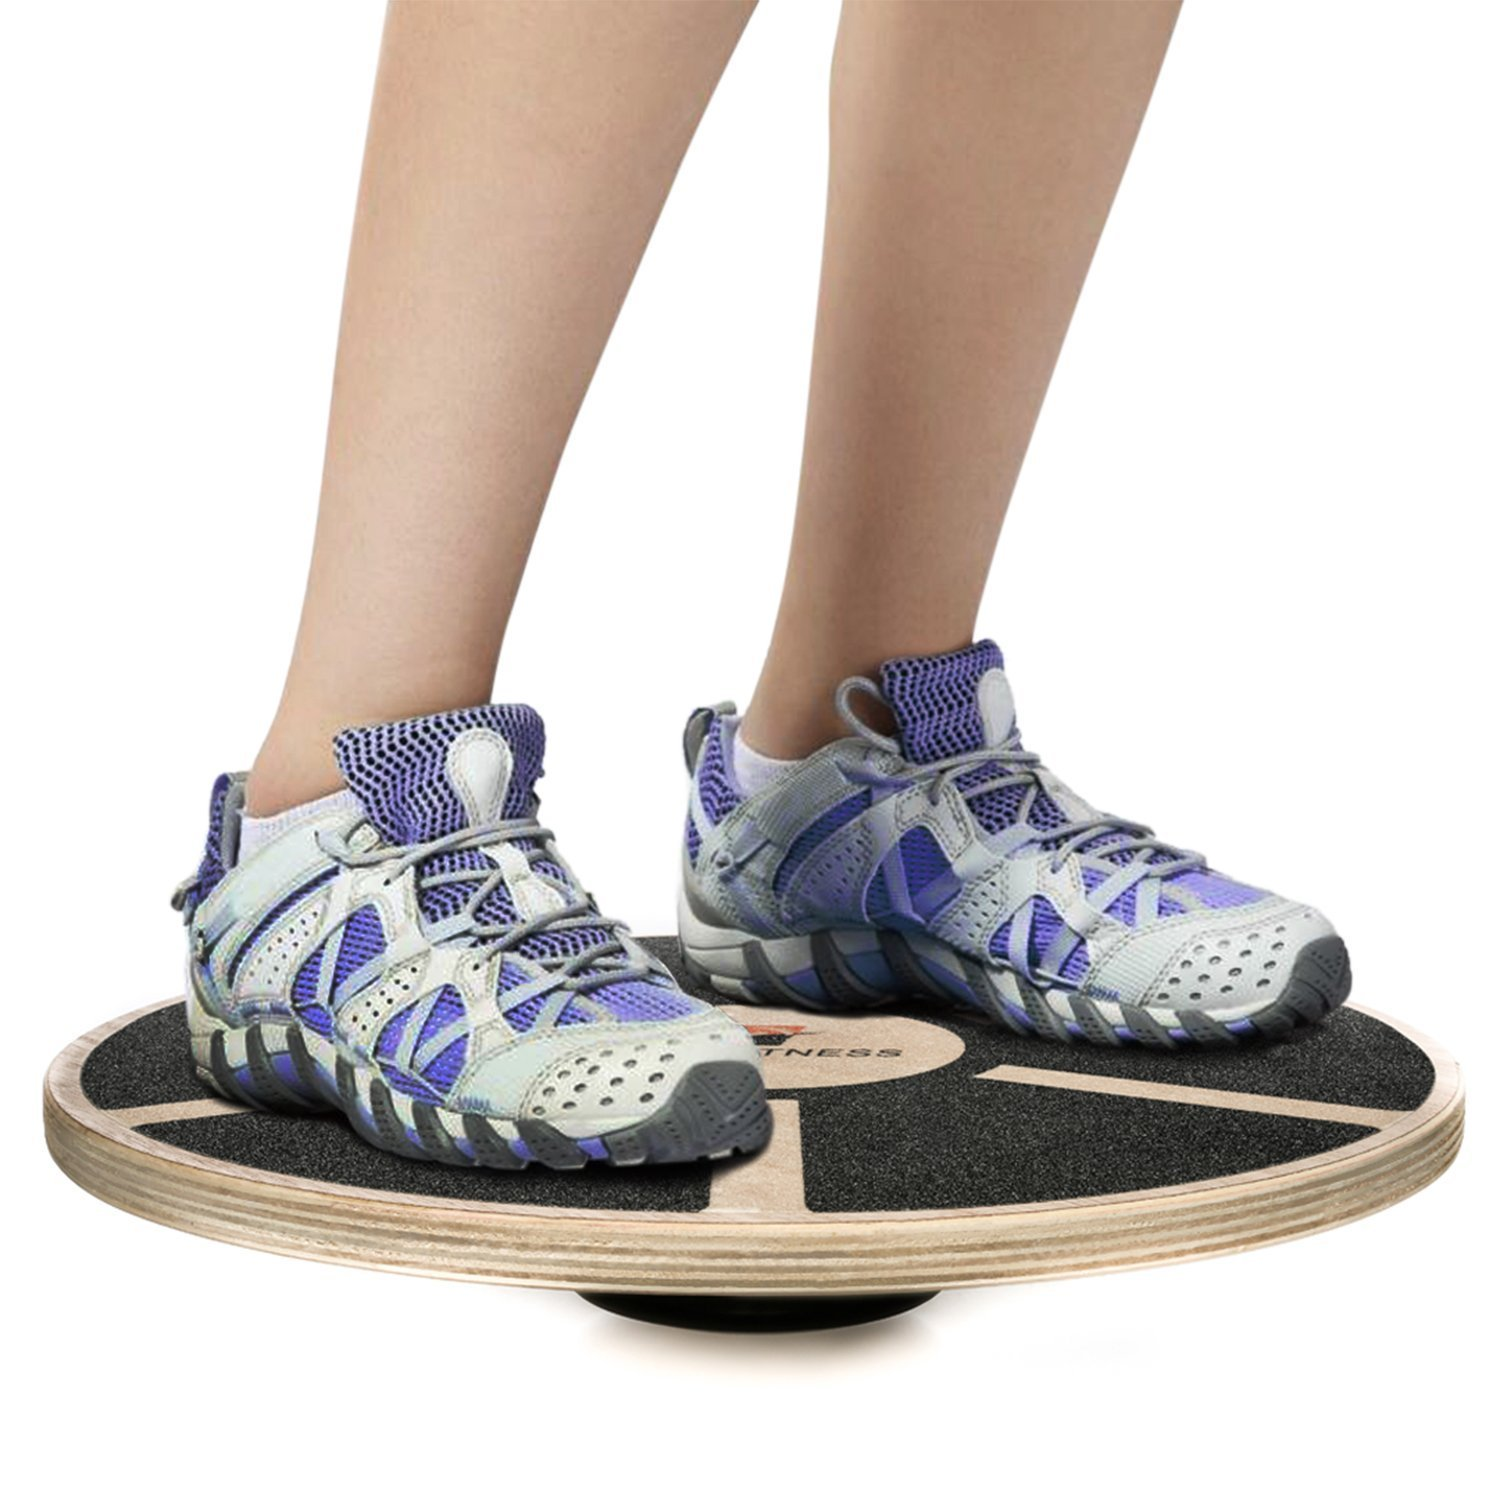 ProFitness Balance Board - Exercise, Tone Muscles, Strengthen Core